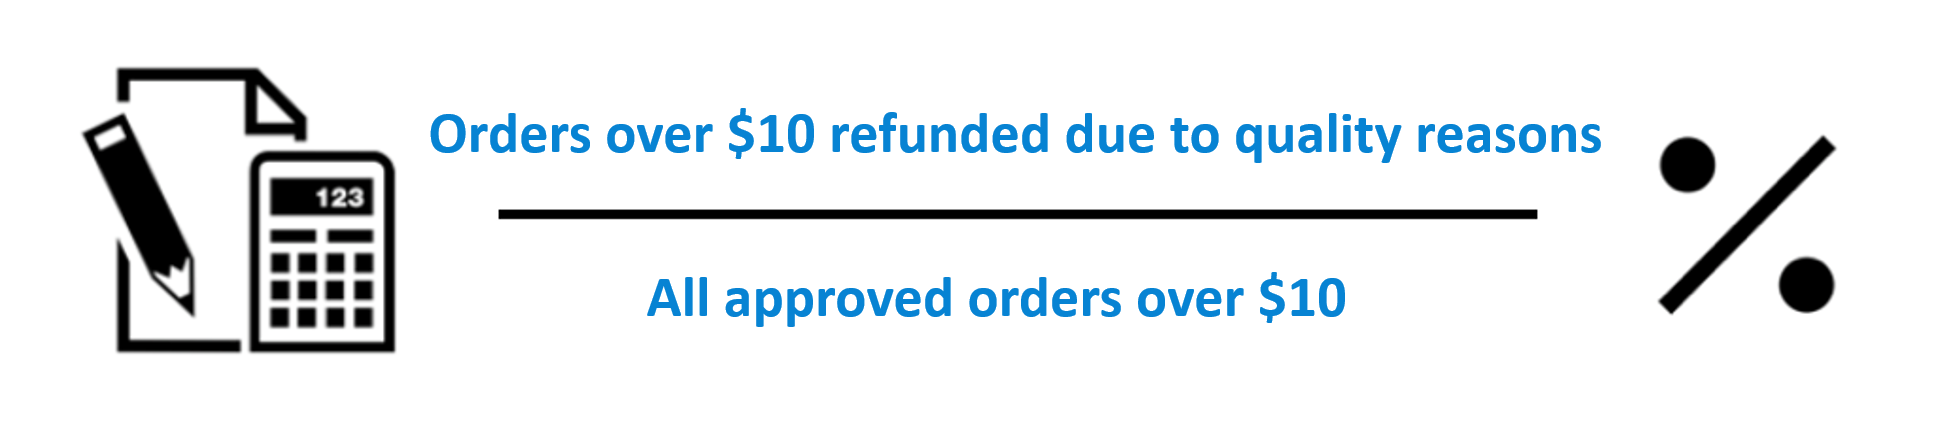 quality_refund_rate_EN.png